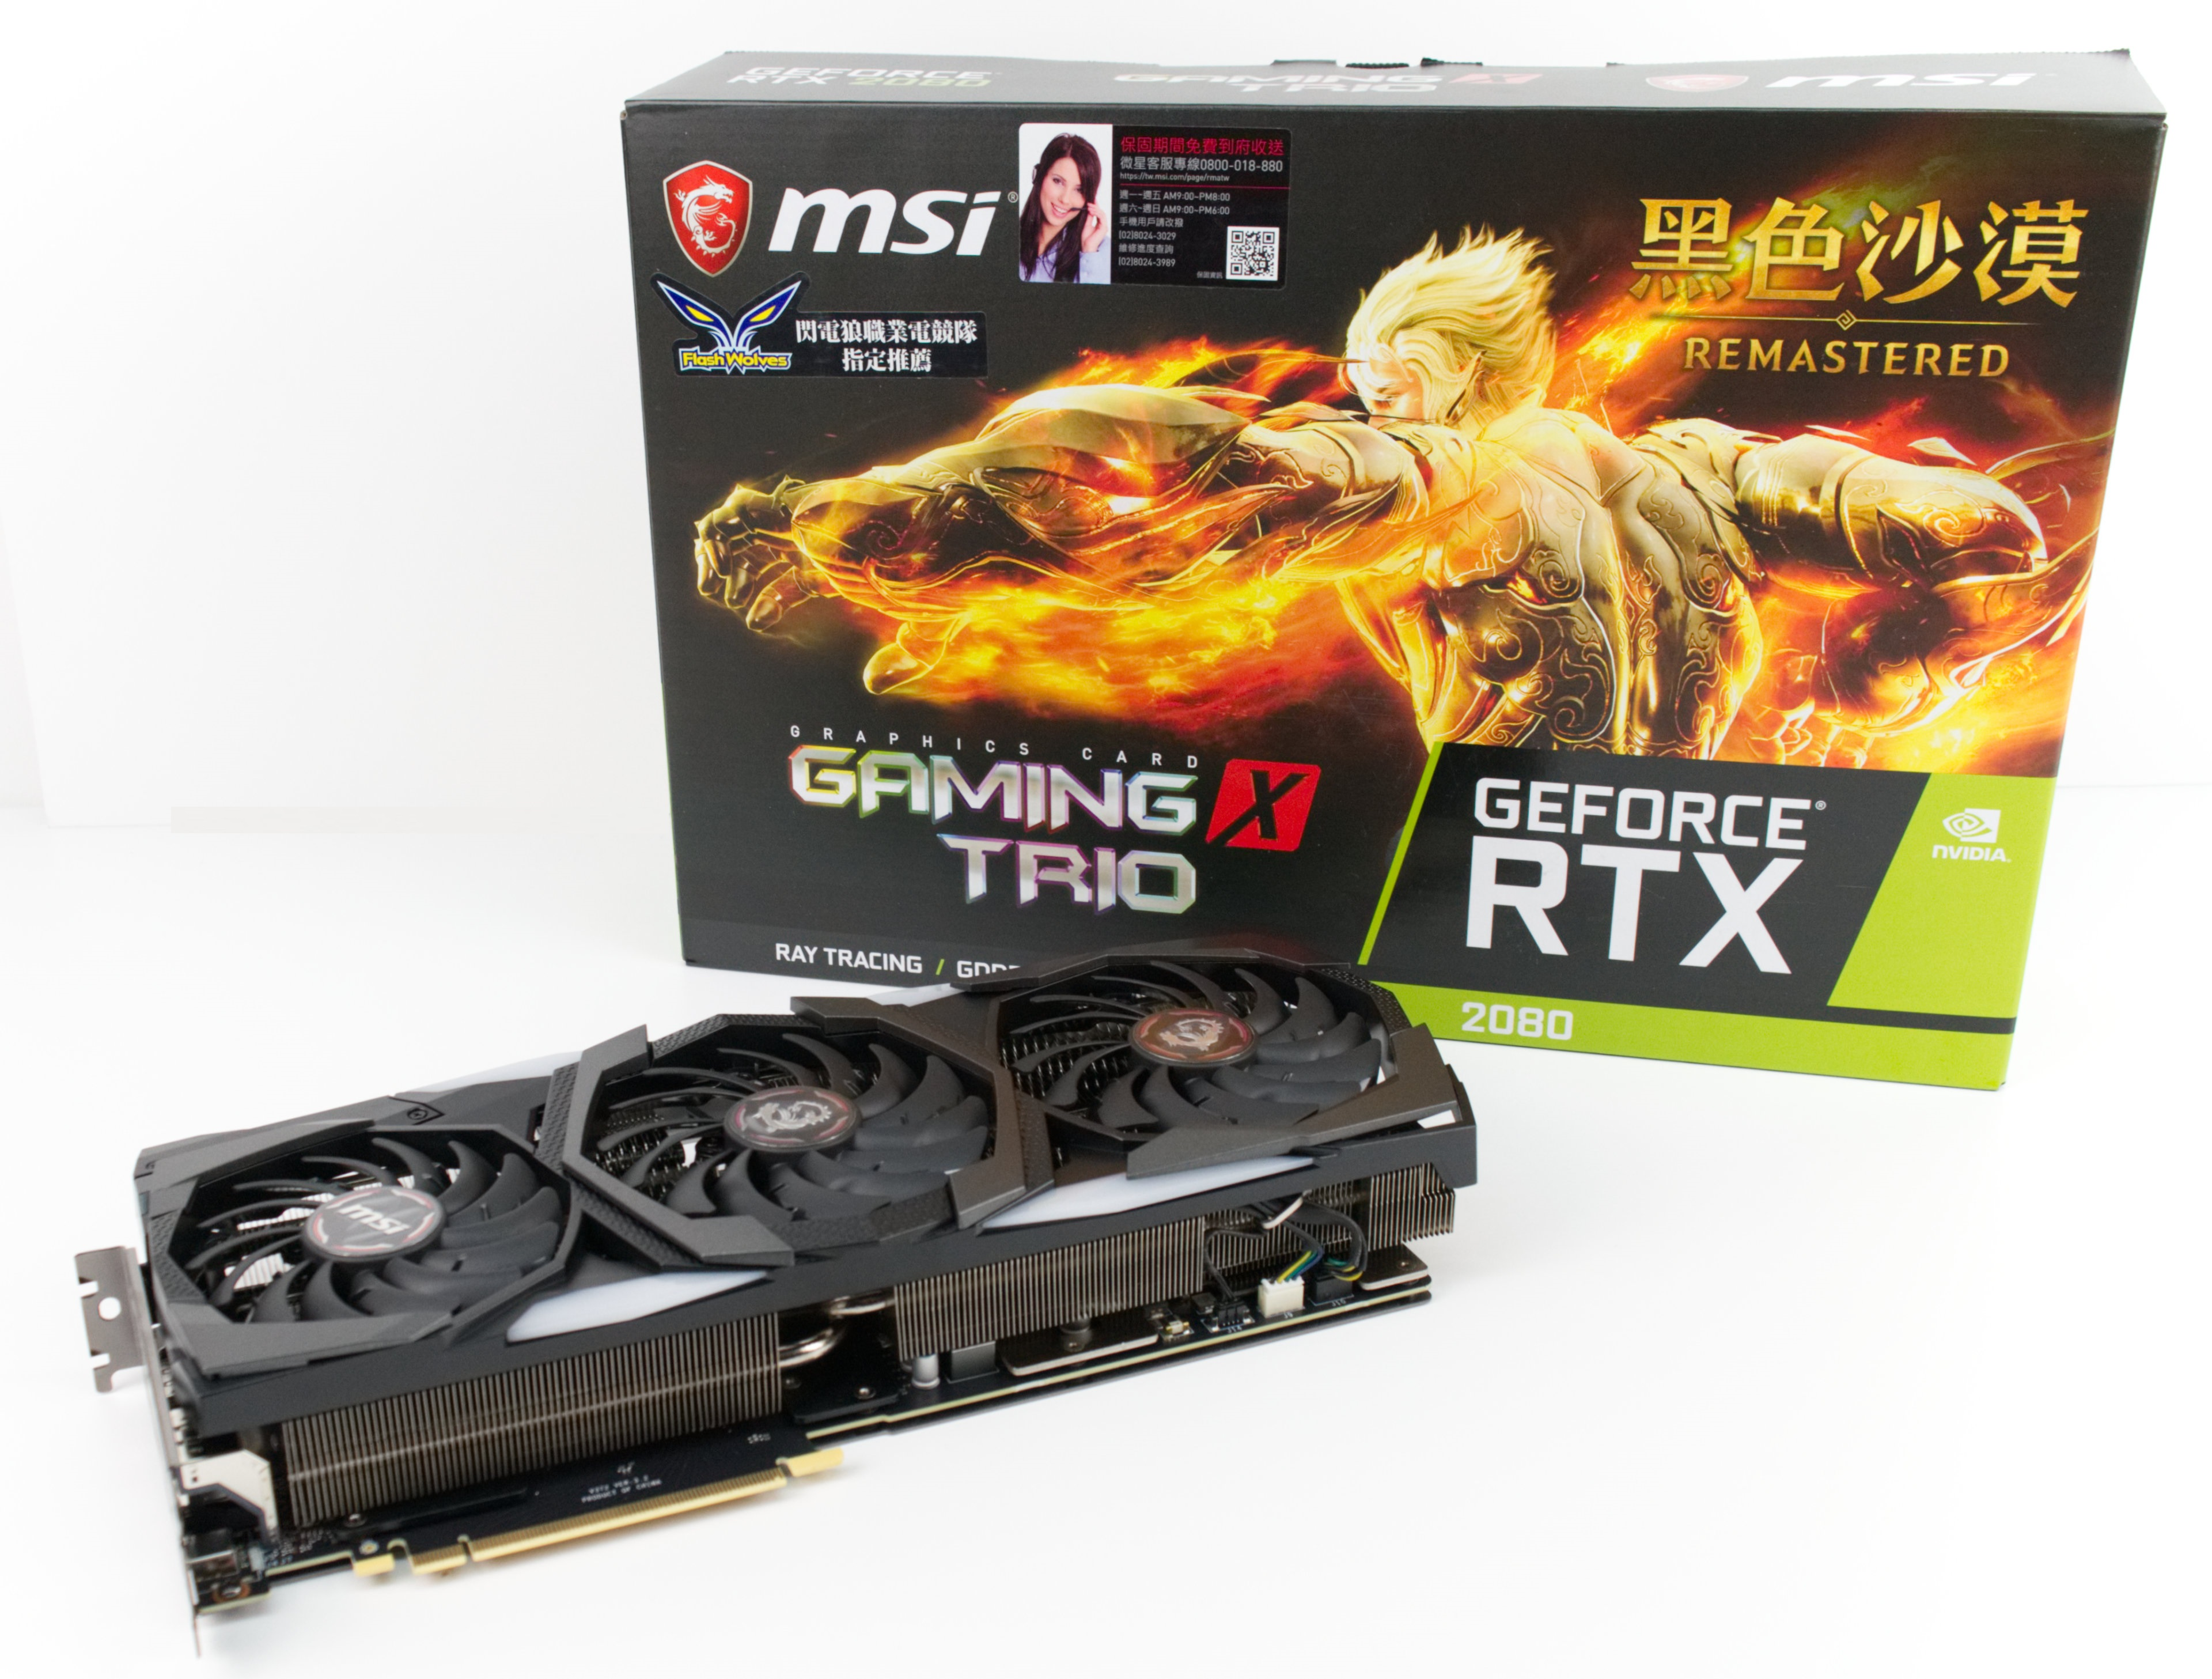 MSI RTX 2080 Gaming X Trio Desktop Graphics Card Review